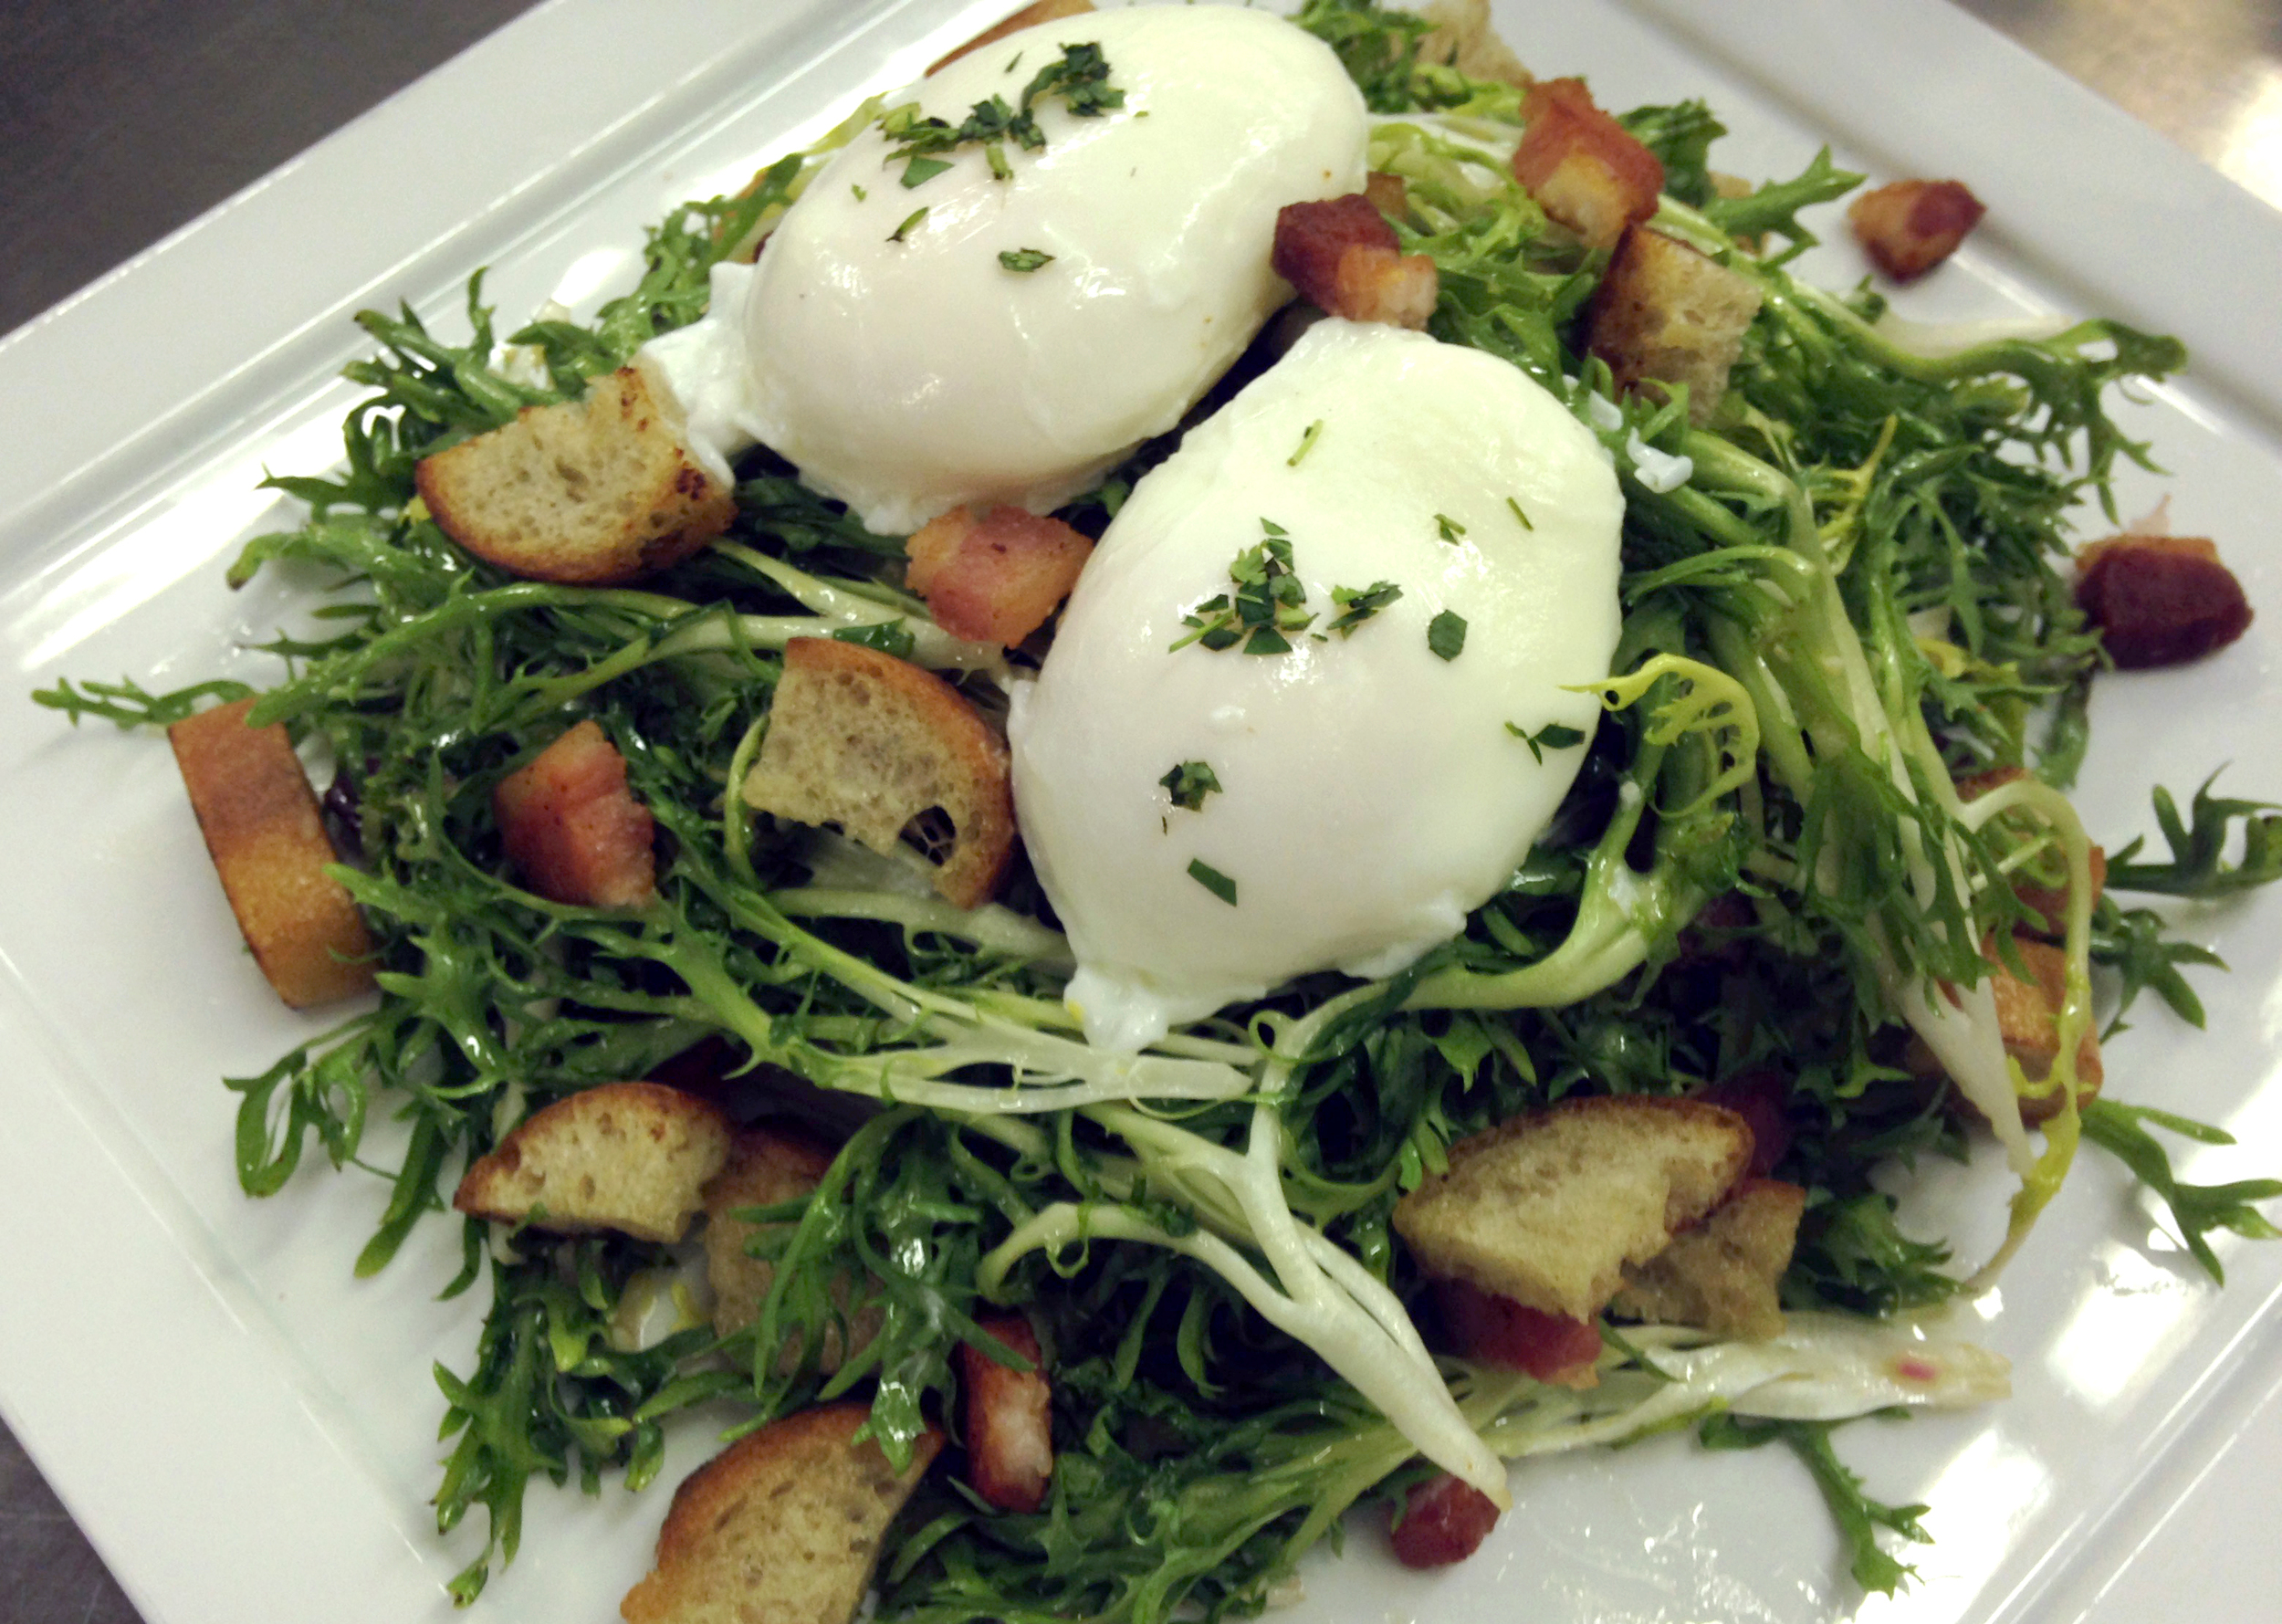 Salad Lyonaise with my teammate Vanessa's perfect poached eggs